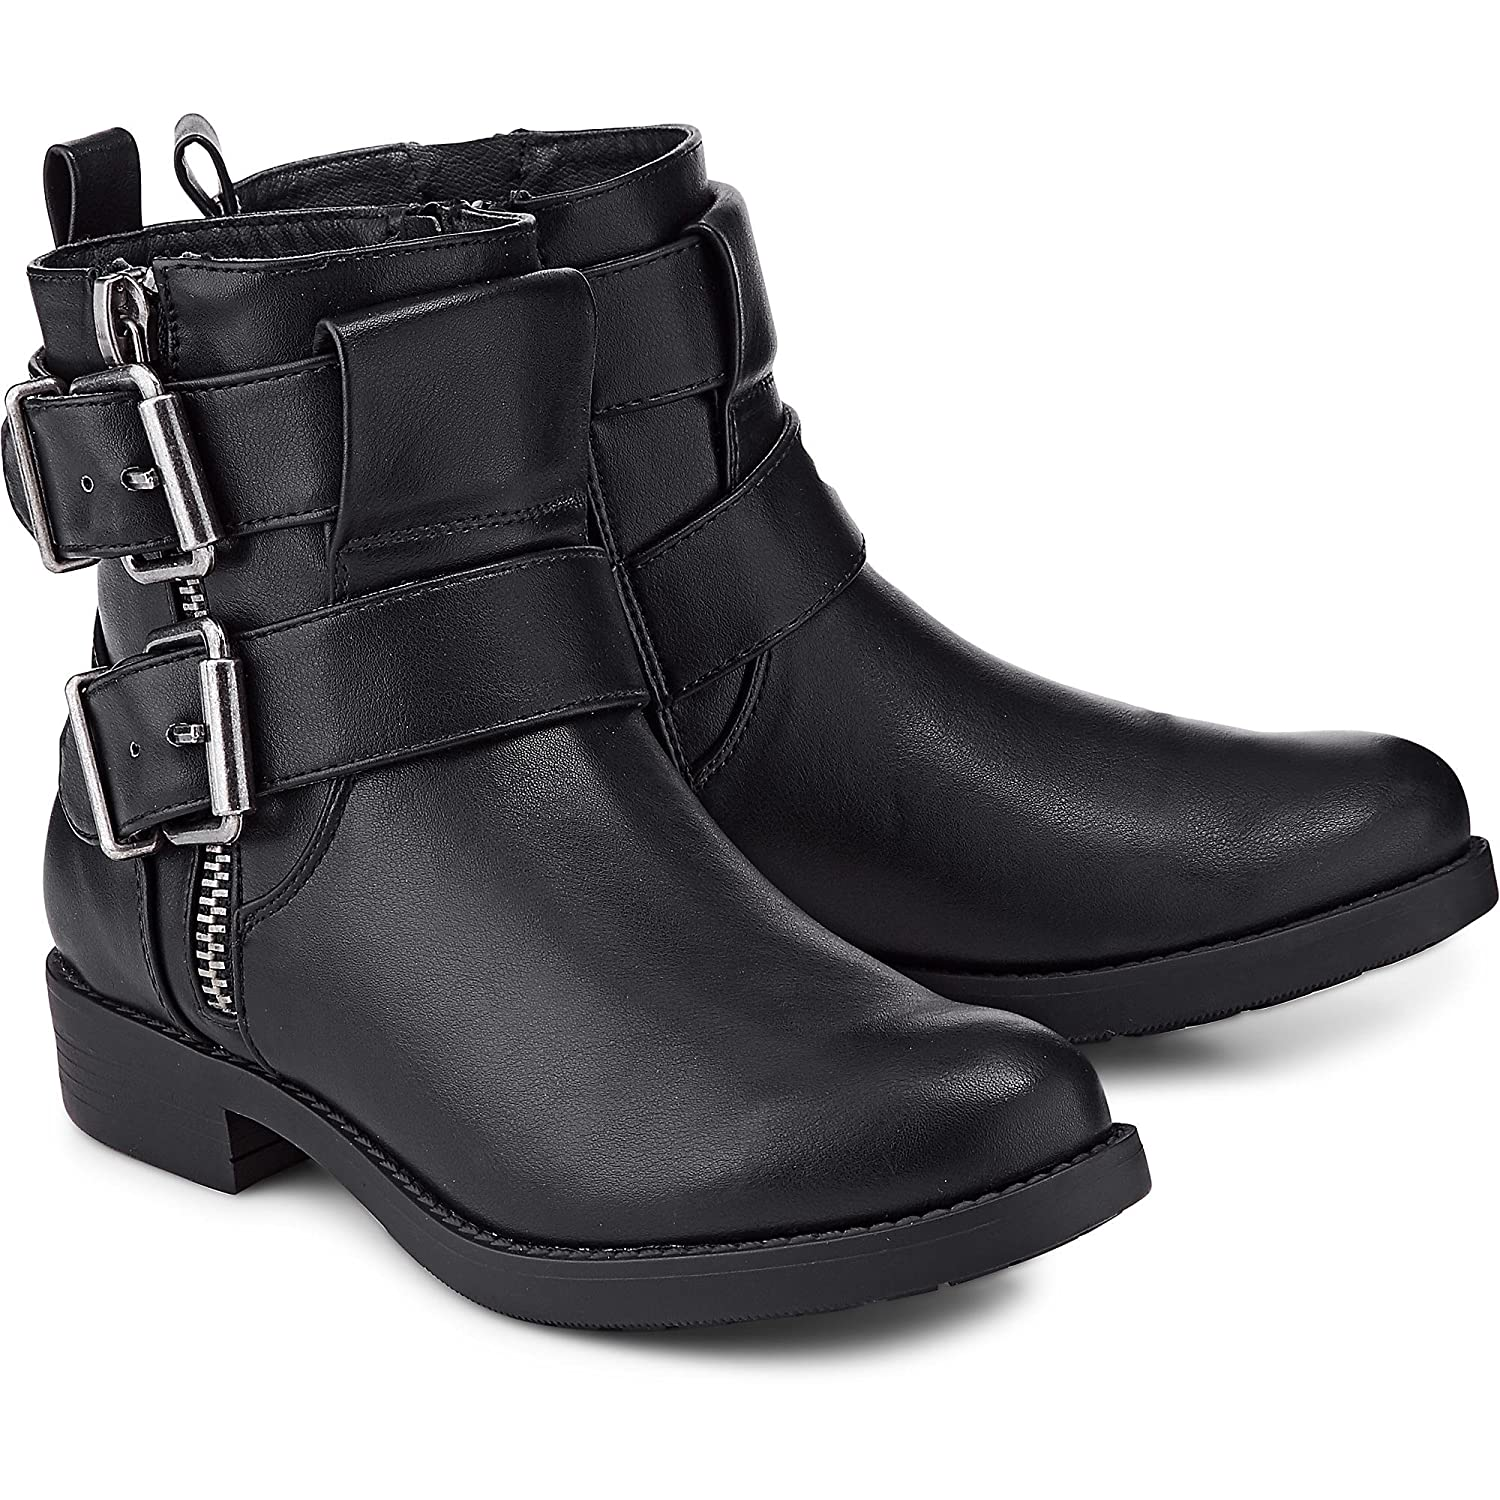 Another A Damen Damen Biker Boots, Stiefeletten in Schwarzer Leder-Optik mit Schnallen-Applikationen Schwarz Synthetik 40